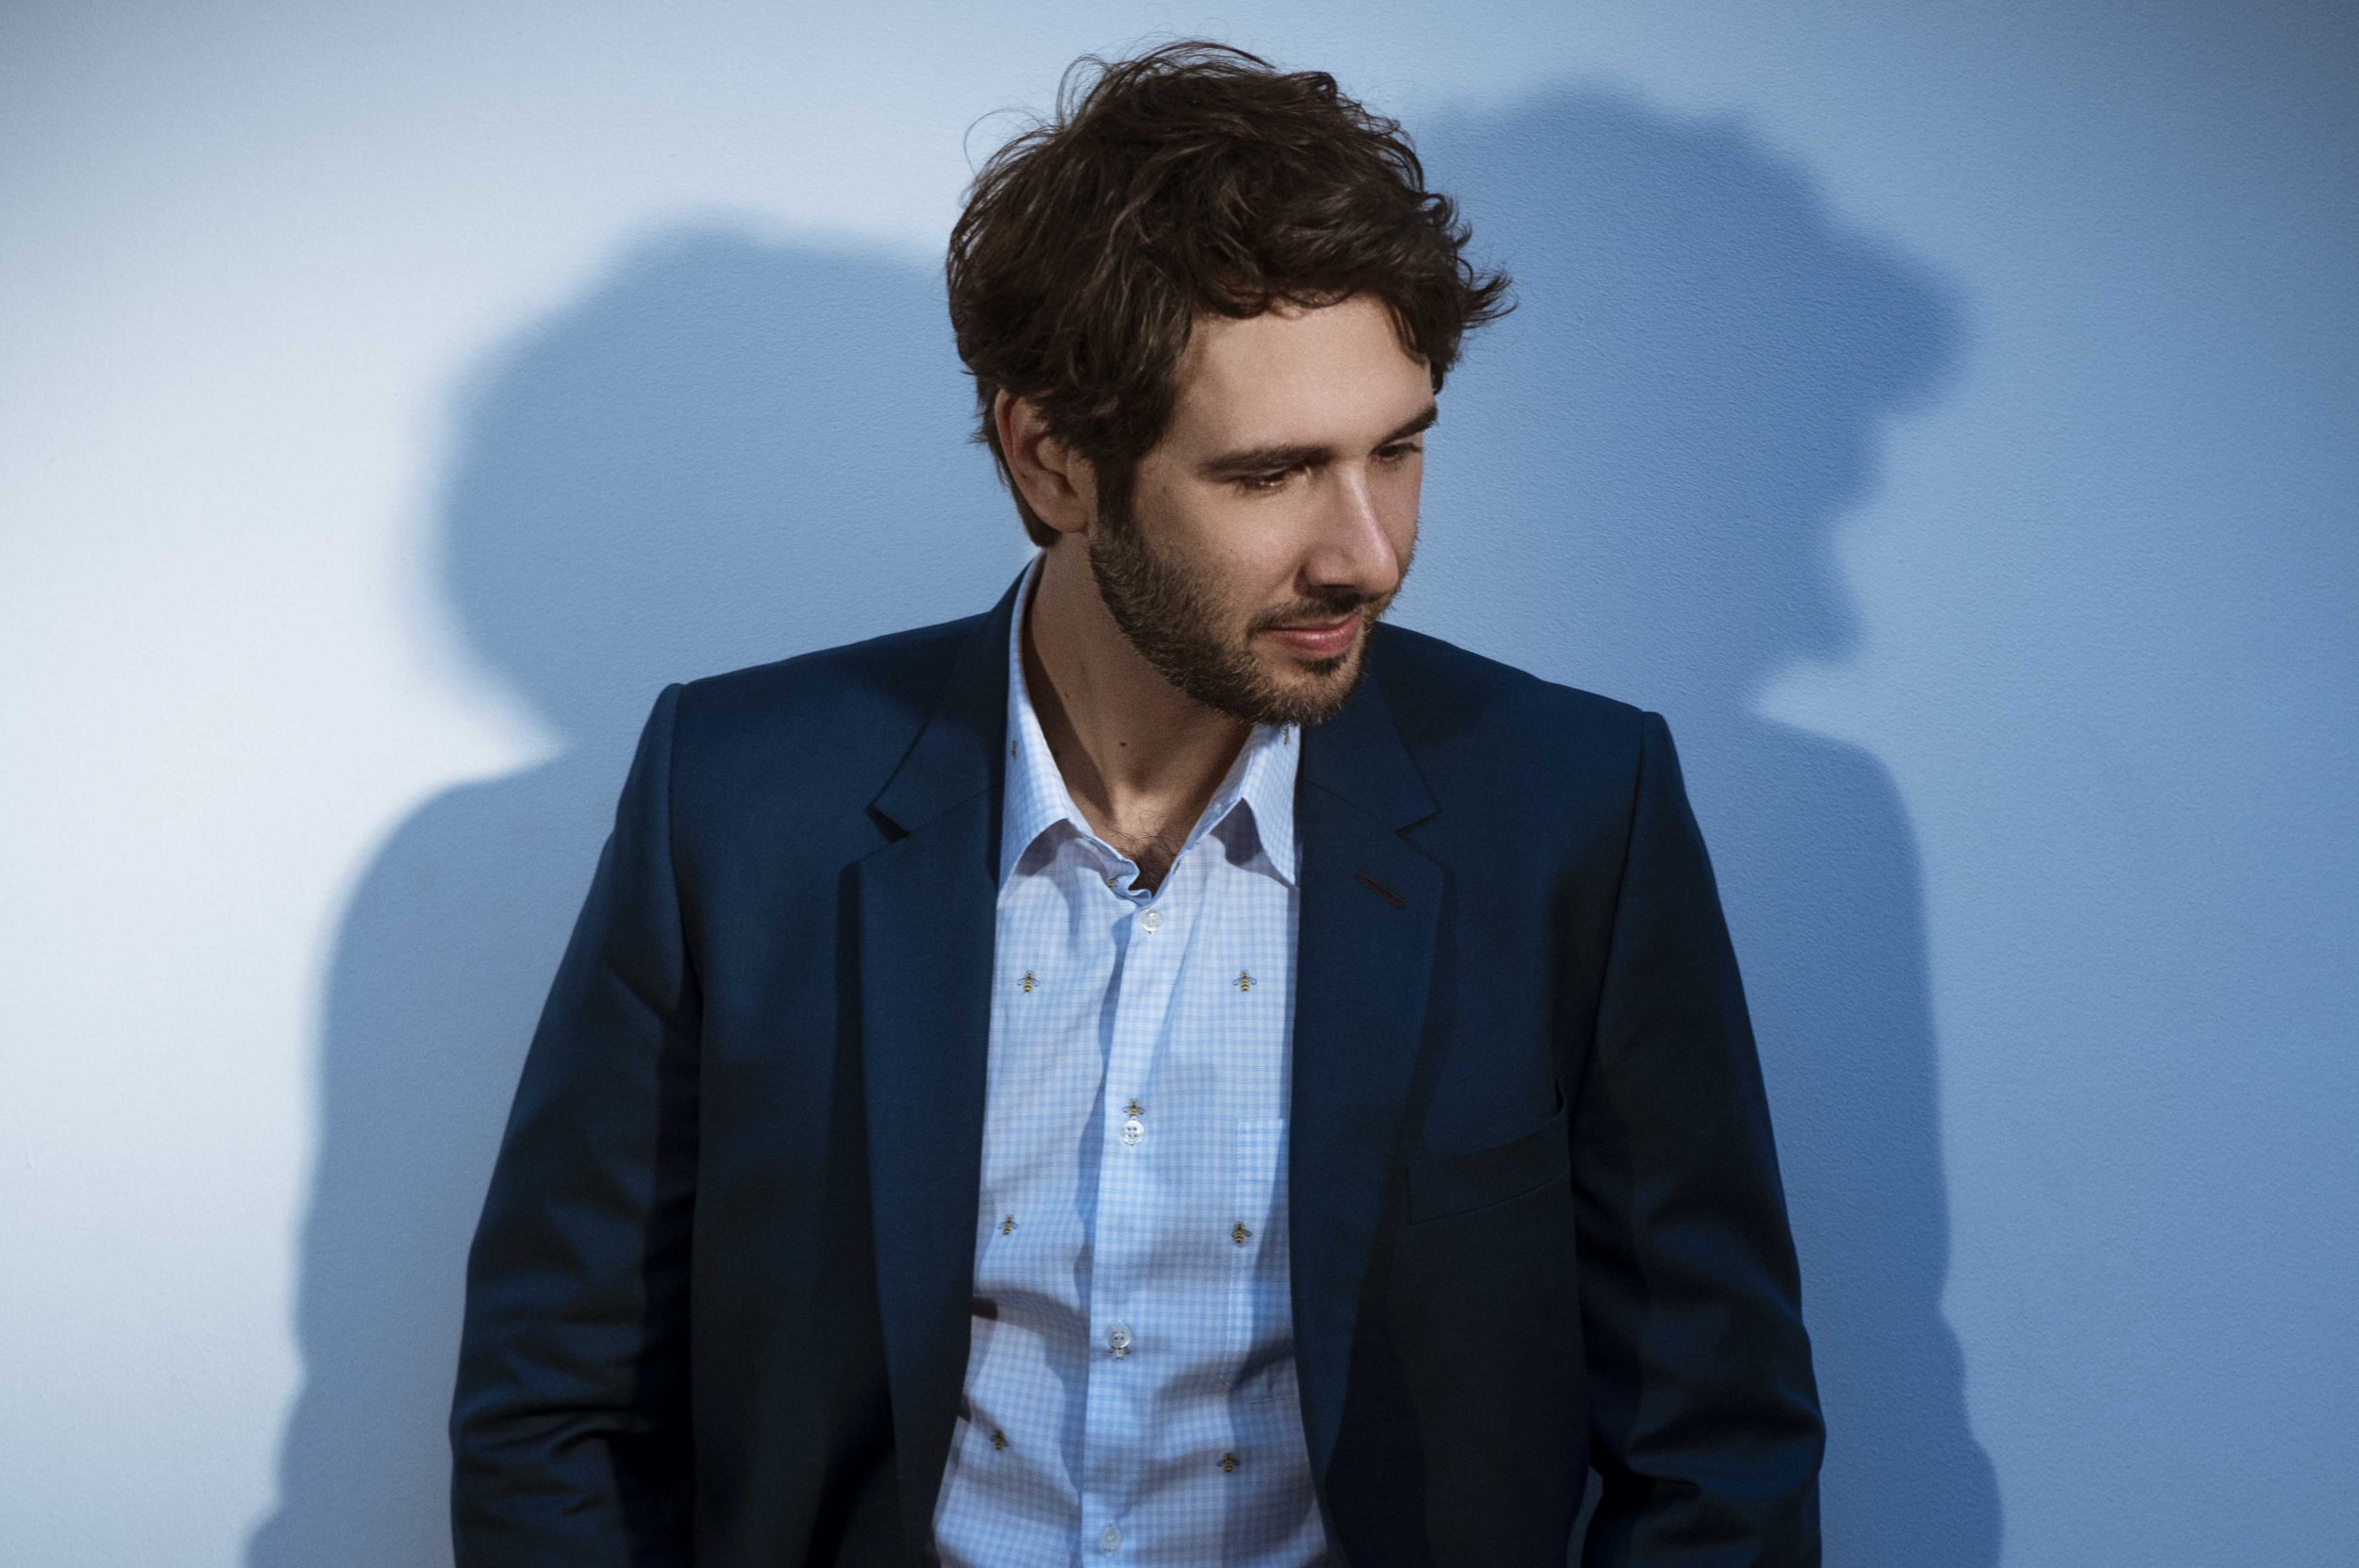 Early life, career and past relationships of Josh Groban